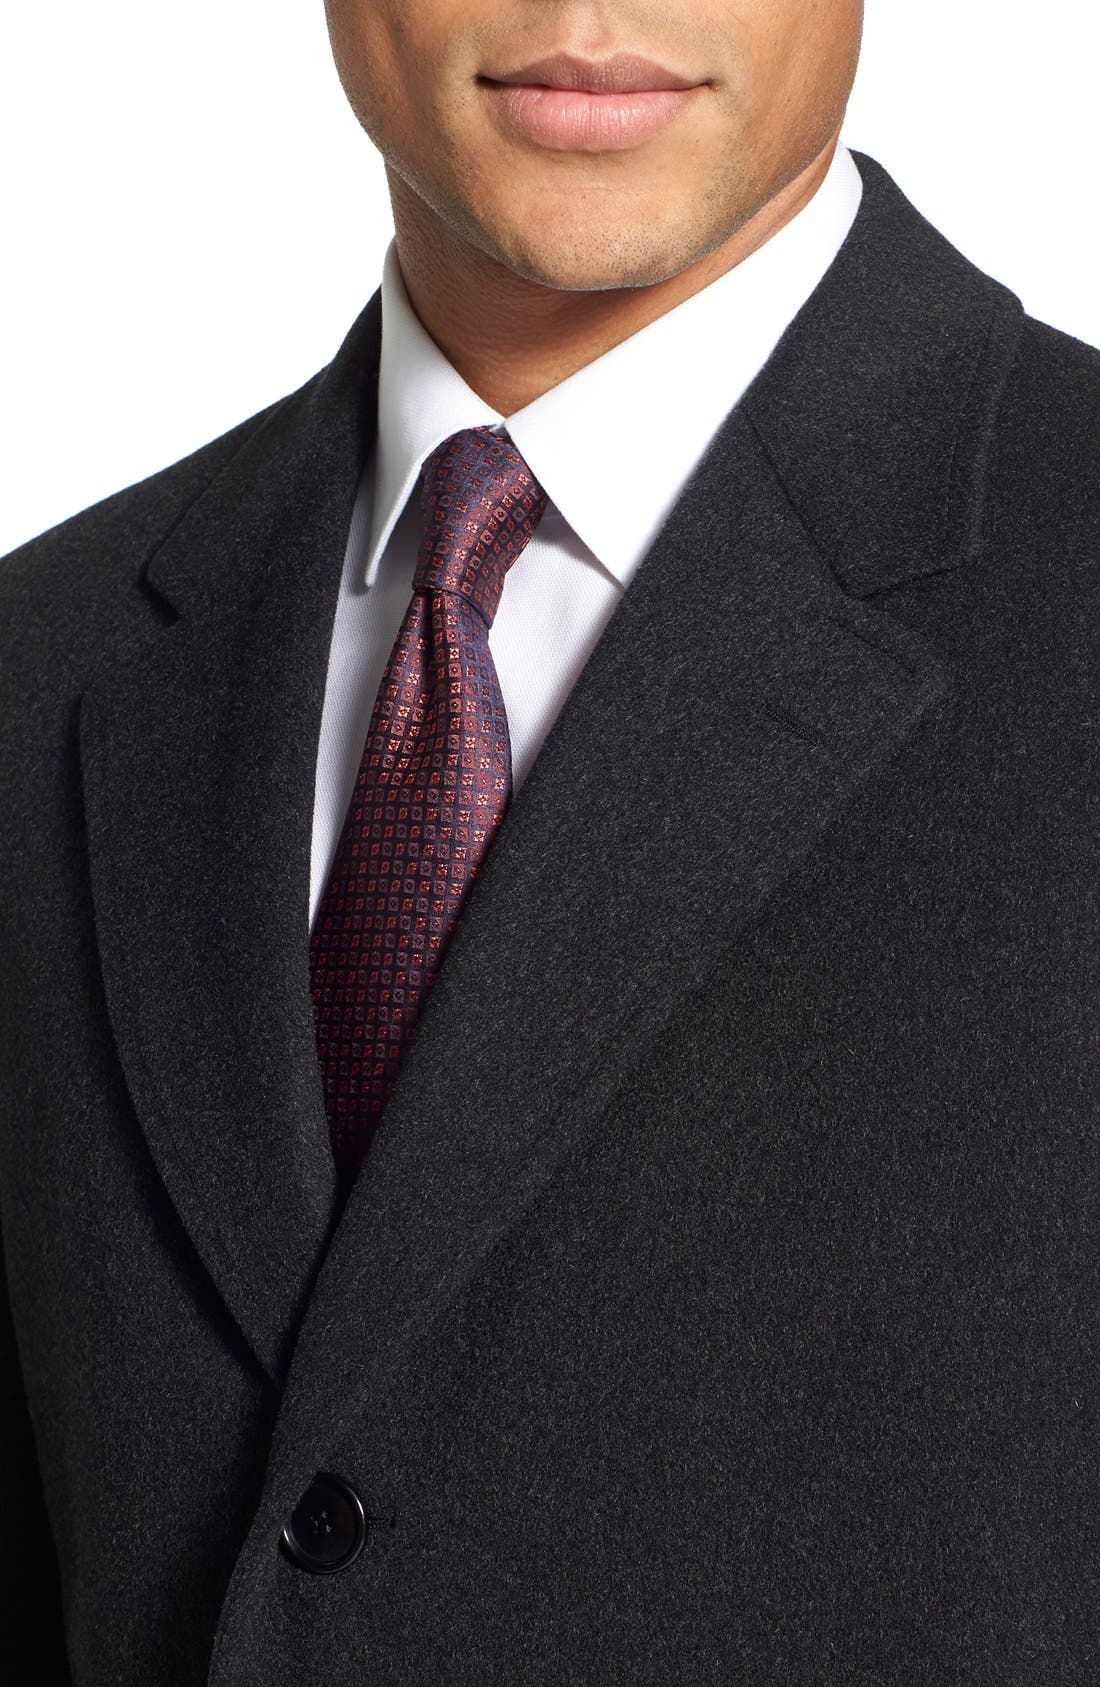 Classic Fit Wool & Cashmere Topcoat,                             Alternate thumbnail 2, color,                             020